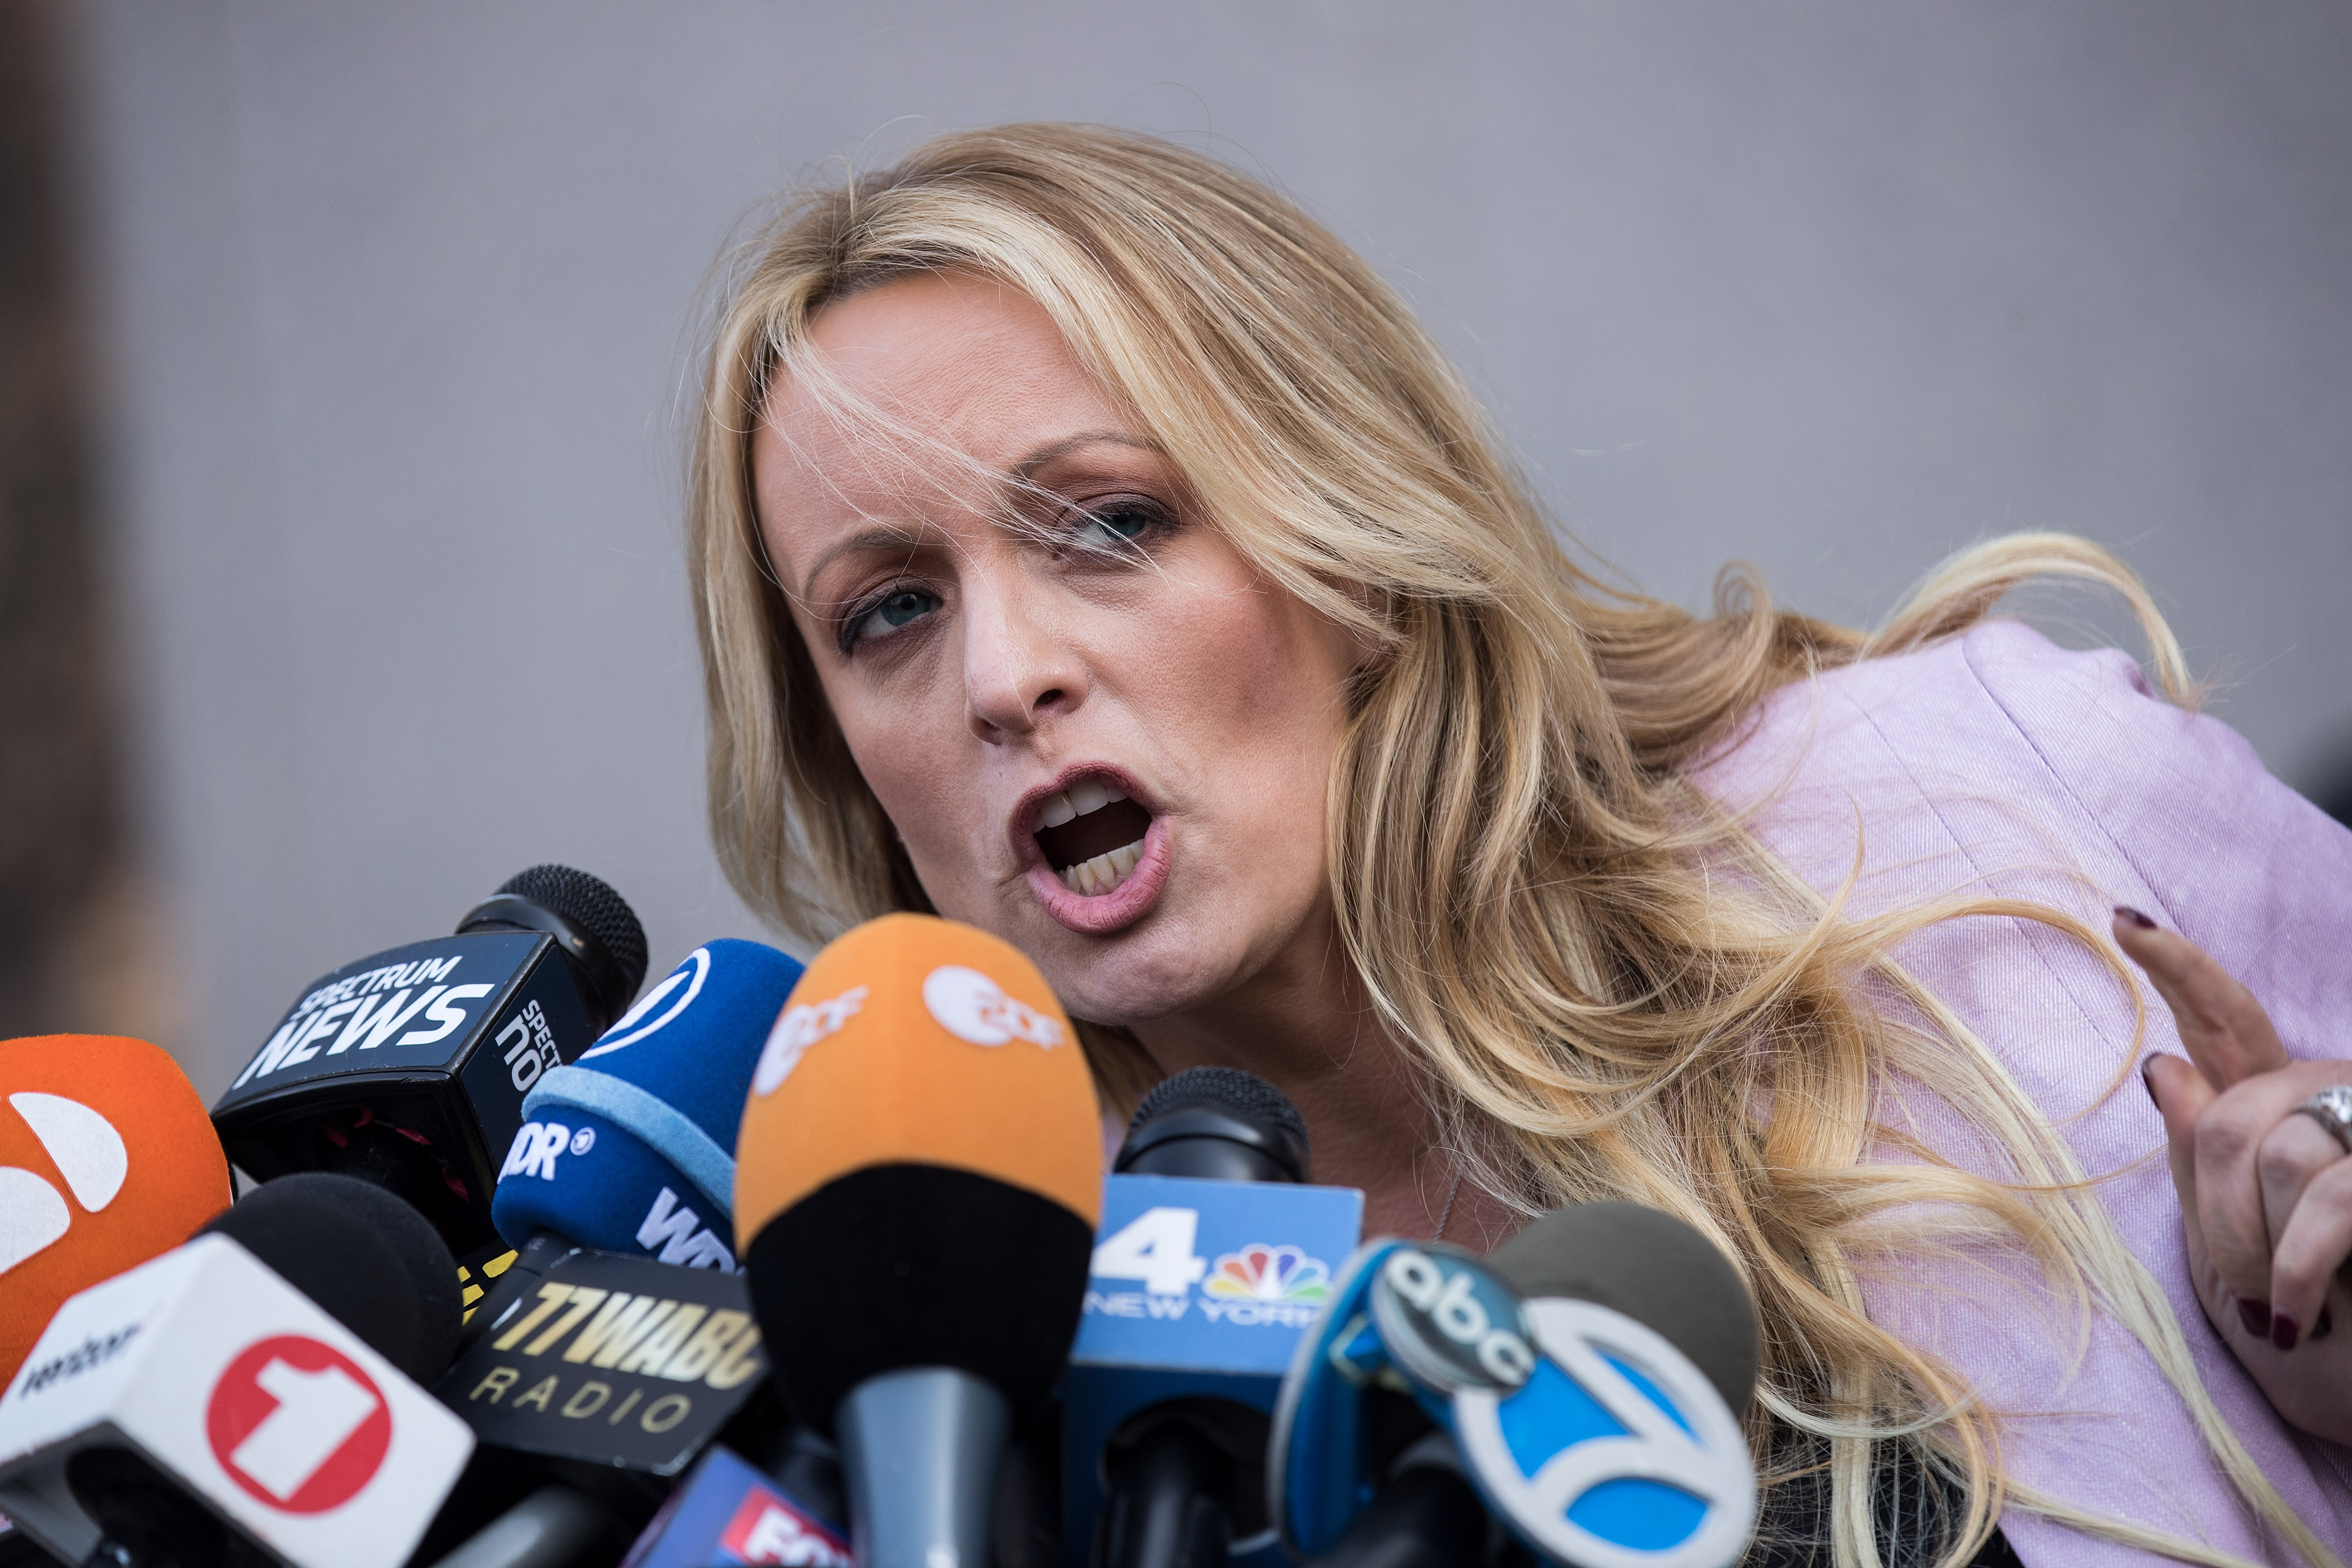 Adult film actress Stormy Daniels (Stephanie Clifford) speaks to reporters as she exits the United States District Court Southern District of New York for a hearing related to Michael Cohen, President Trump's longtime personal attorney and confidante, April 16, 2018 in New York City.